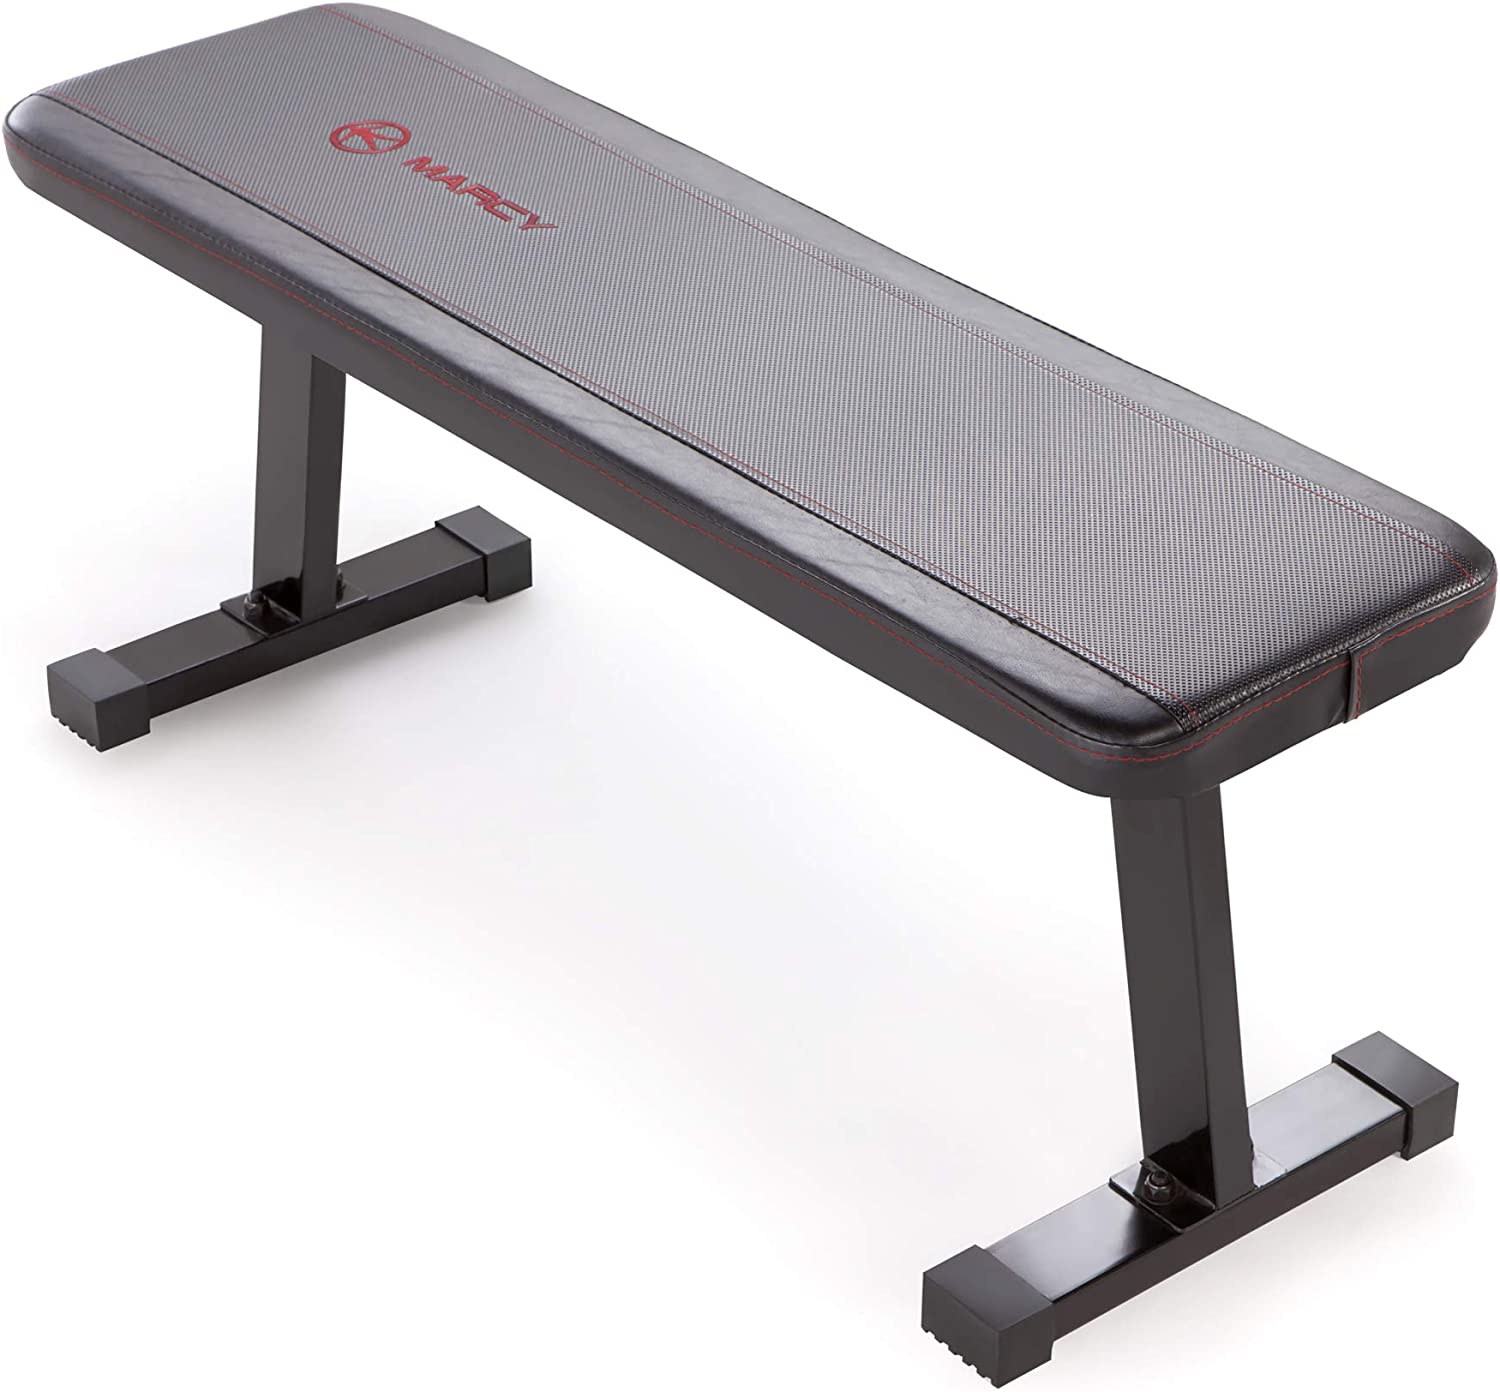 Marcy Flat Utility 600 lbs Max 76% OFF Weight Capacity Bench for Trai New sales